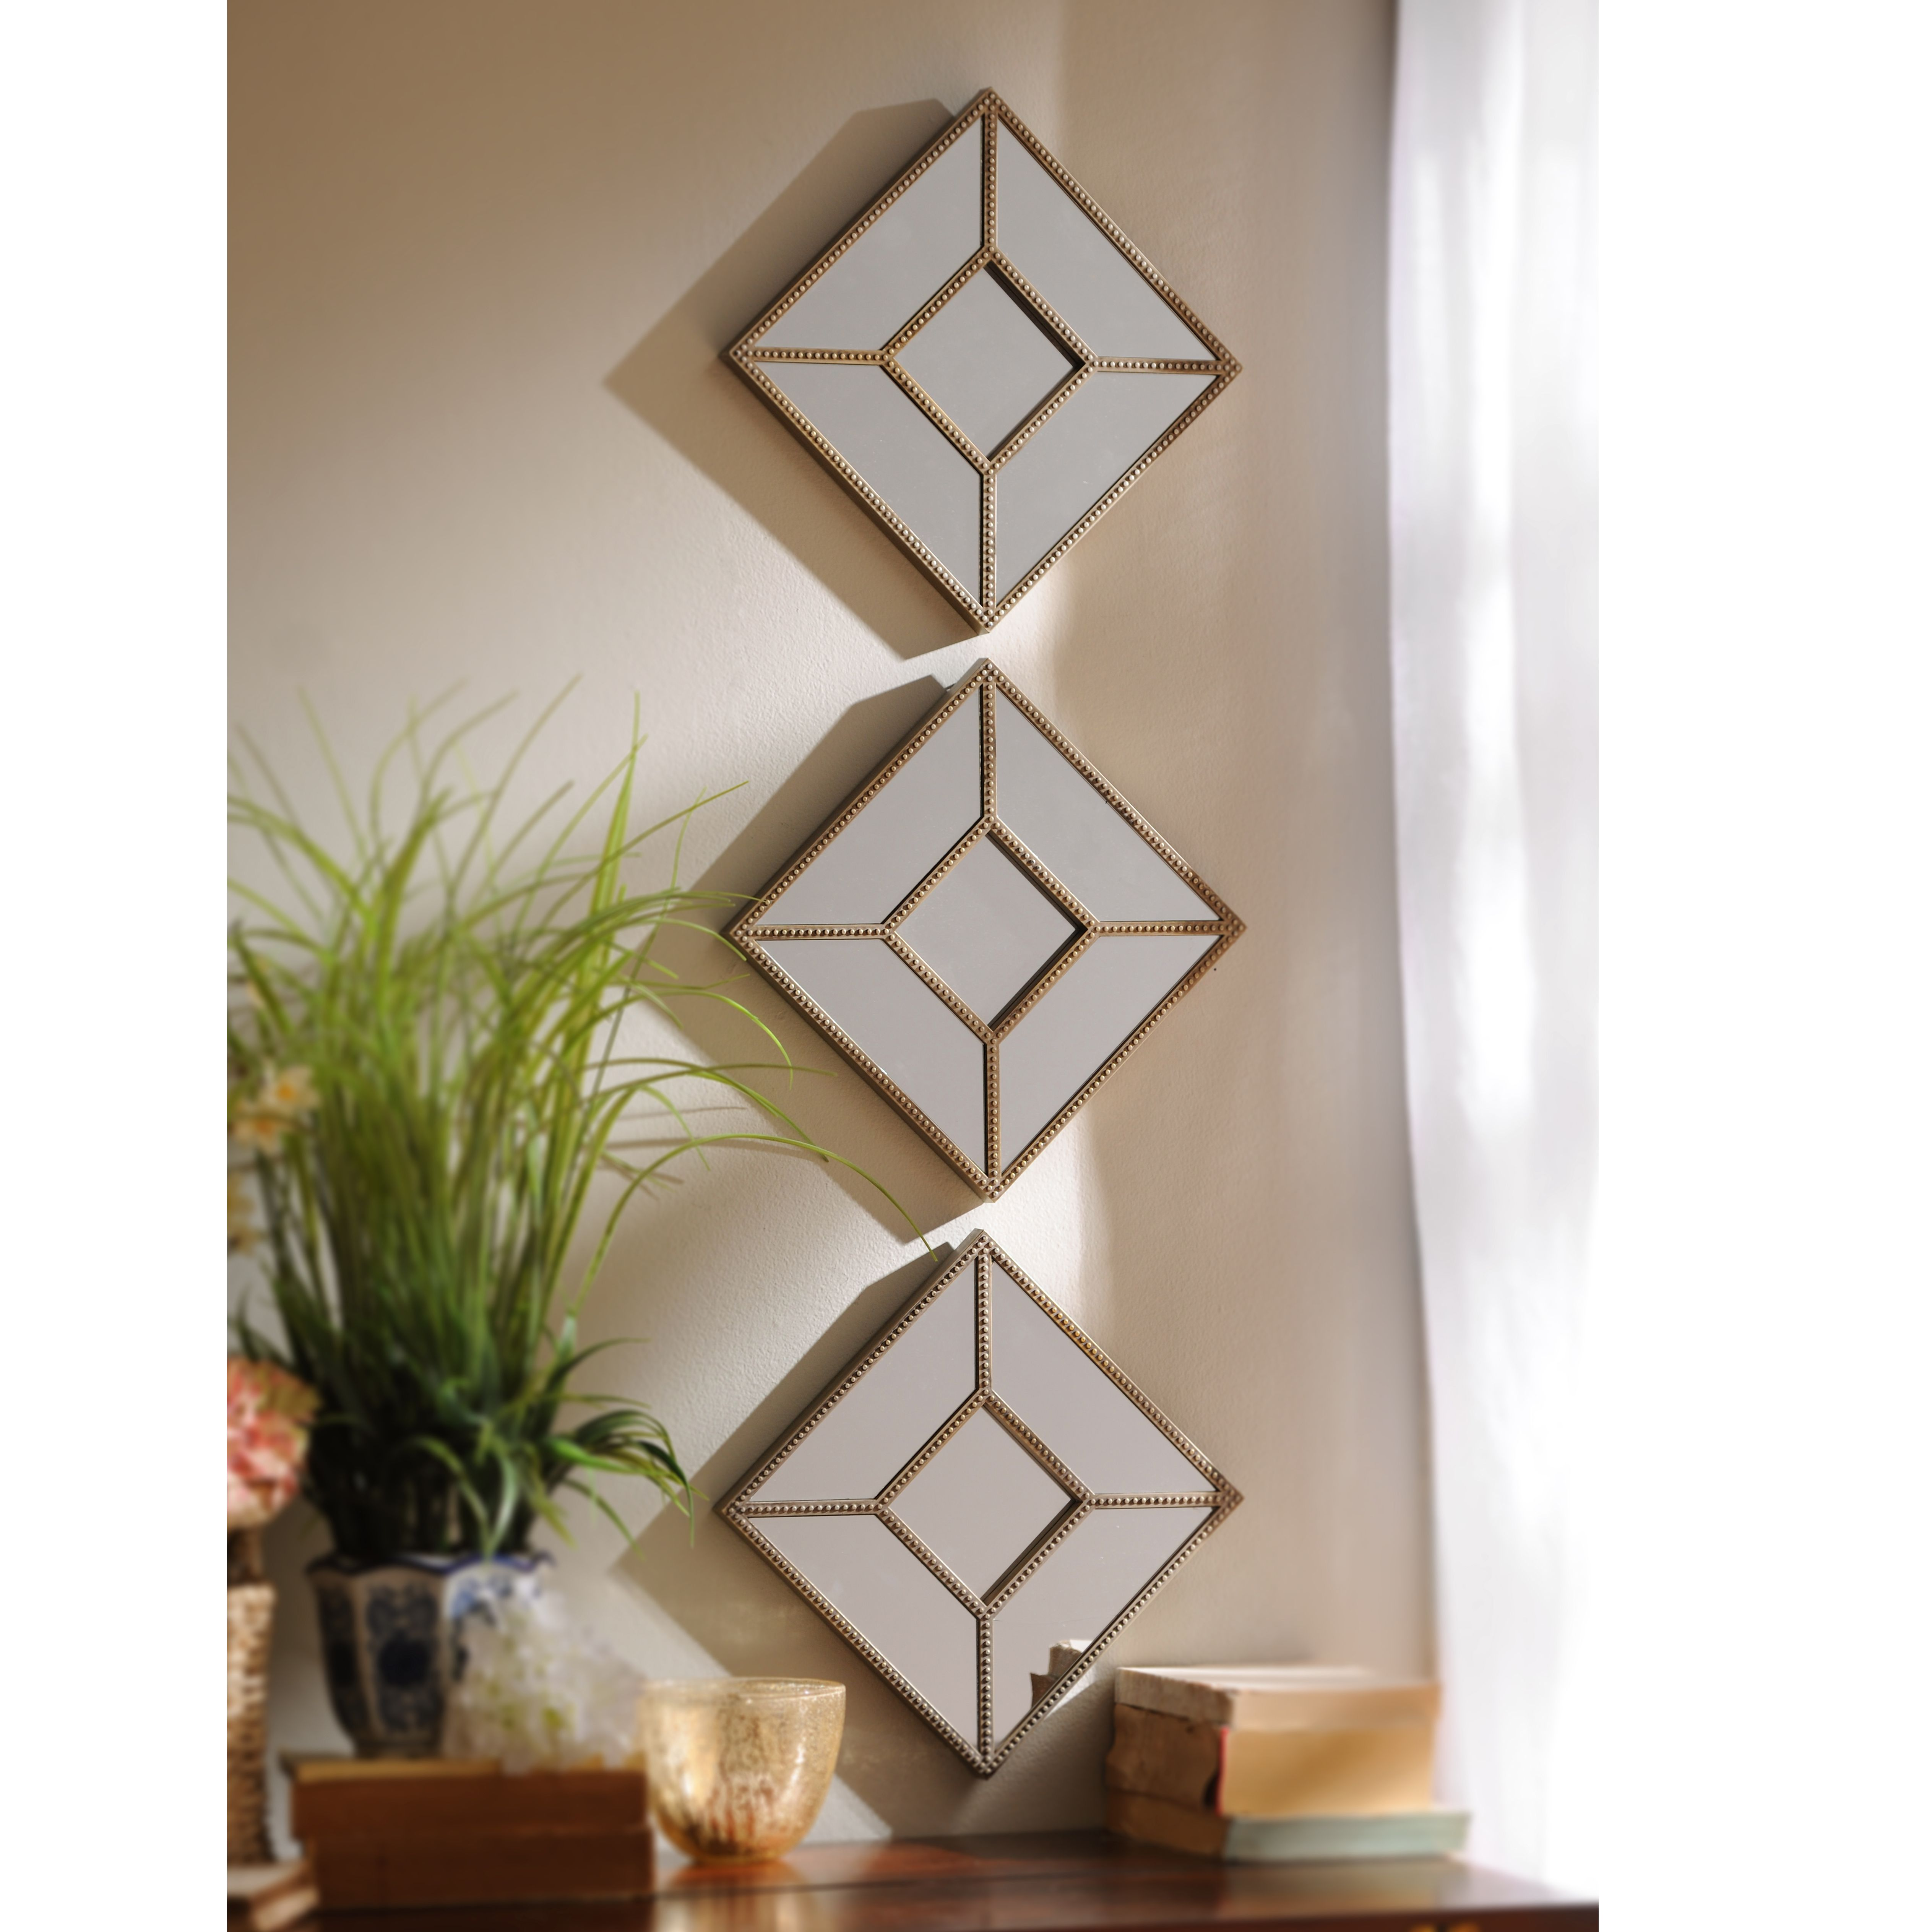 idea decor luxury stunning simple contemporary tips cheap lovely home to on design mirrors decorative architecture